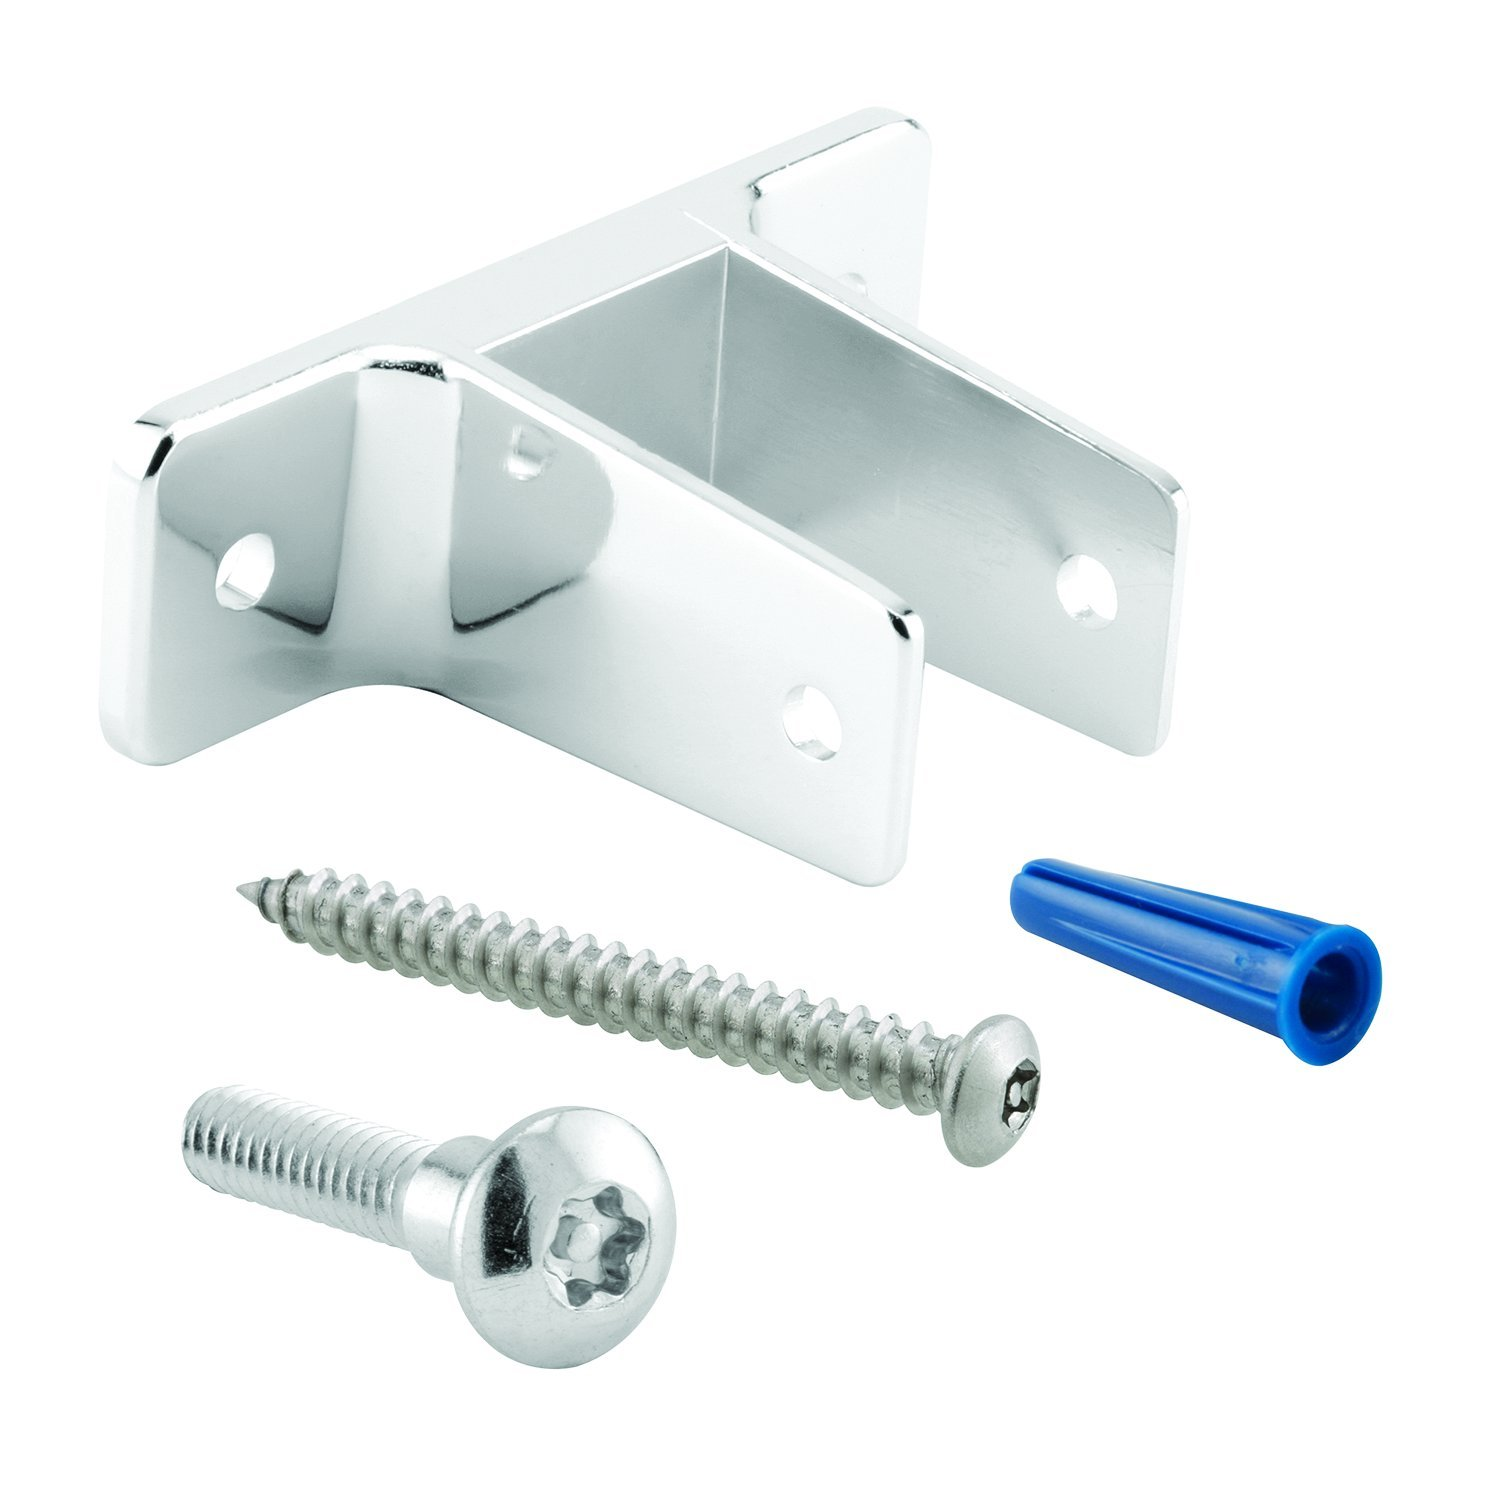 for 1-1//4 Inch Panels Pack of Set Chrome Plated Zinc Alloy Sentry Supply 656-2934 2-Ear Pilaster Bracket